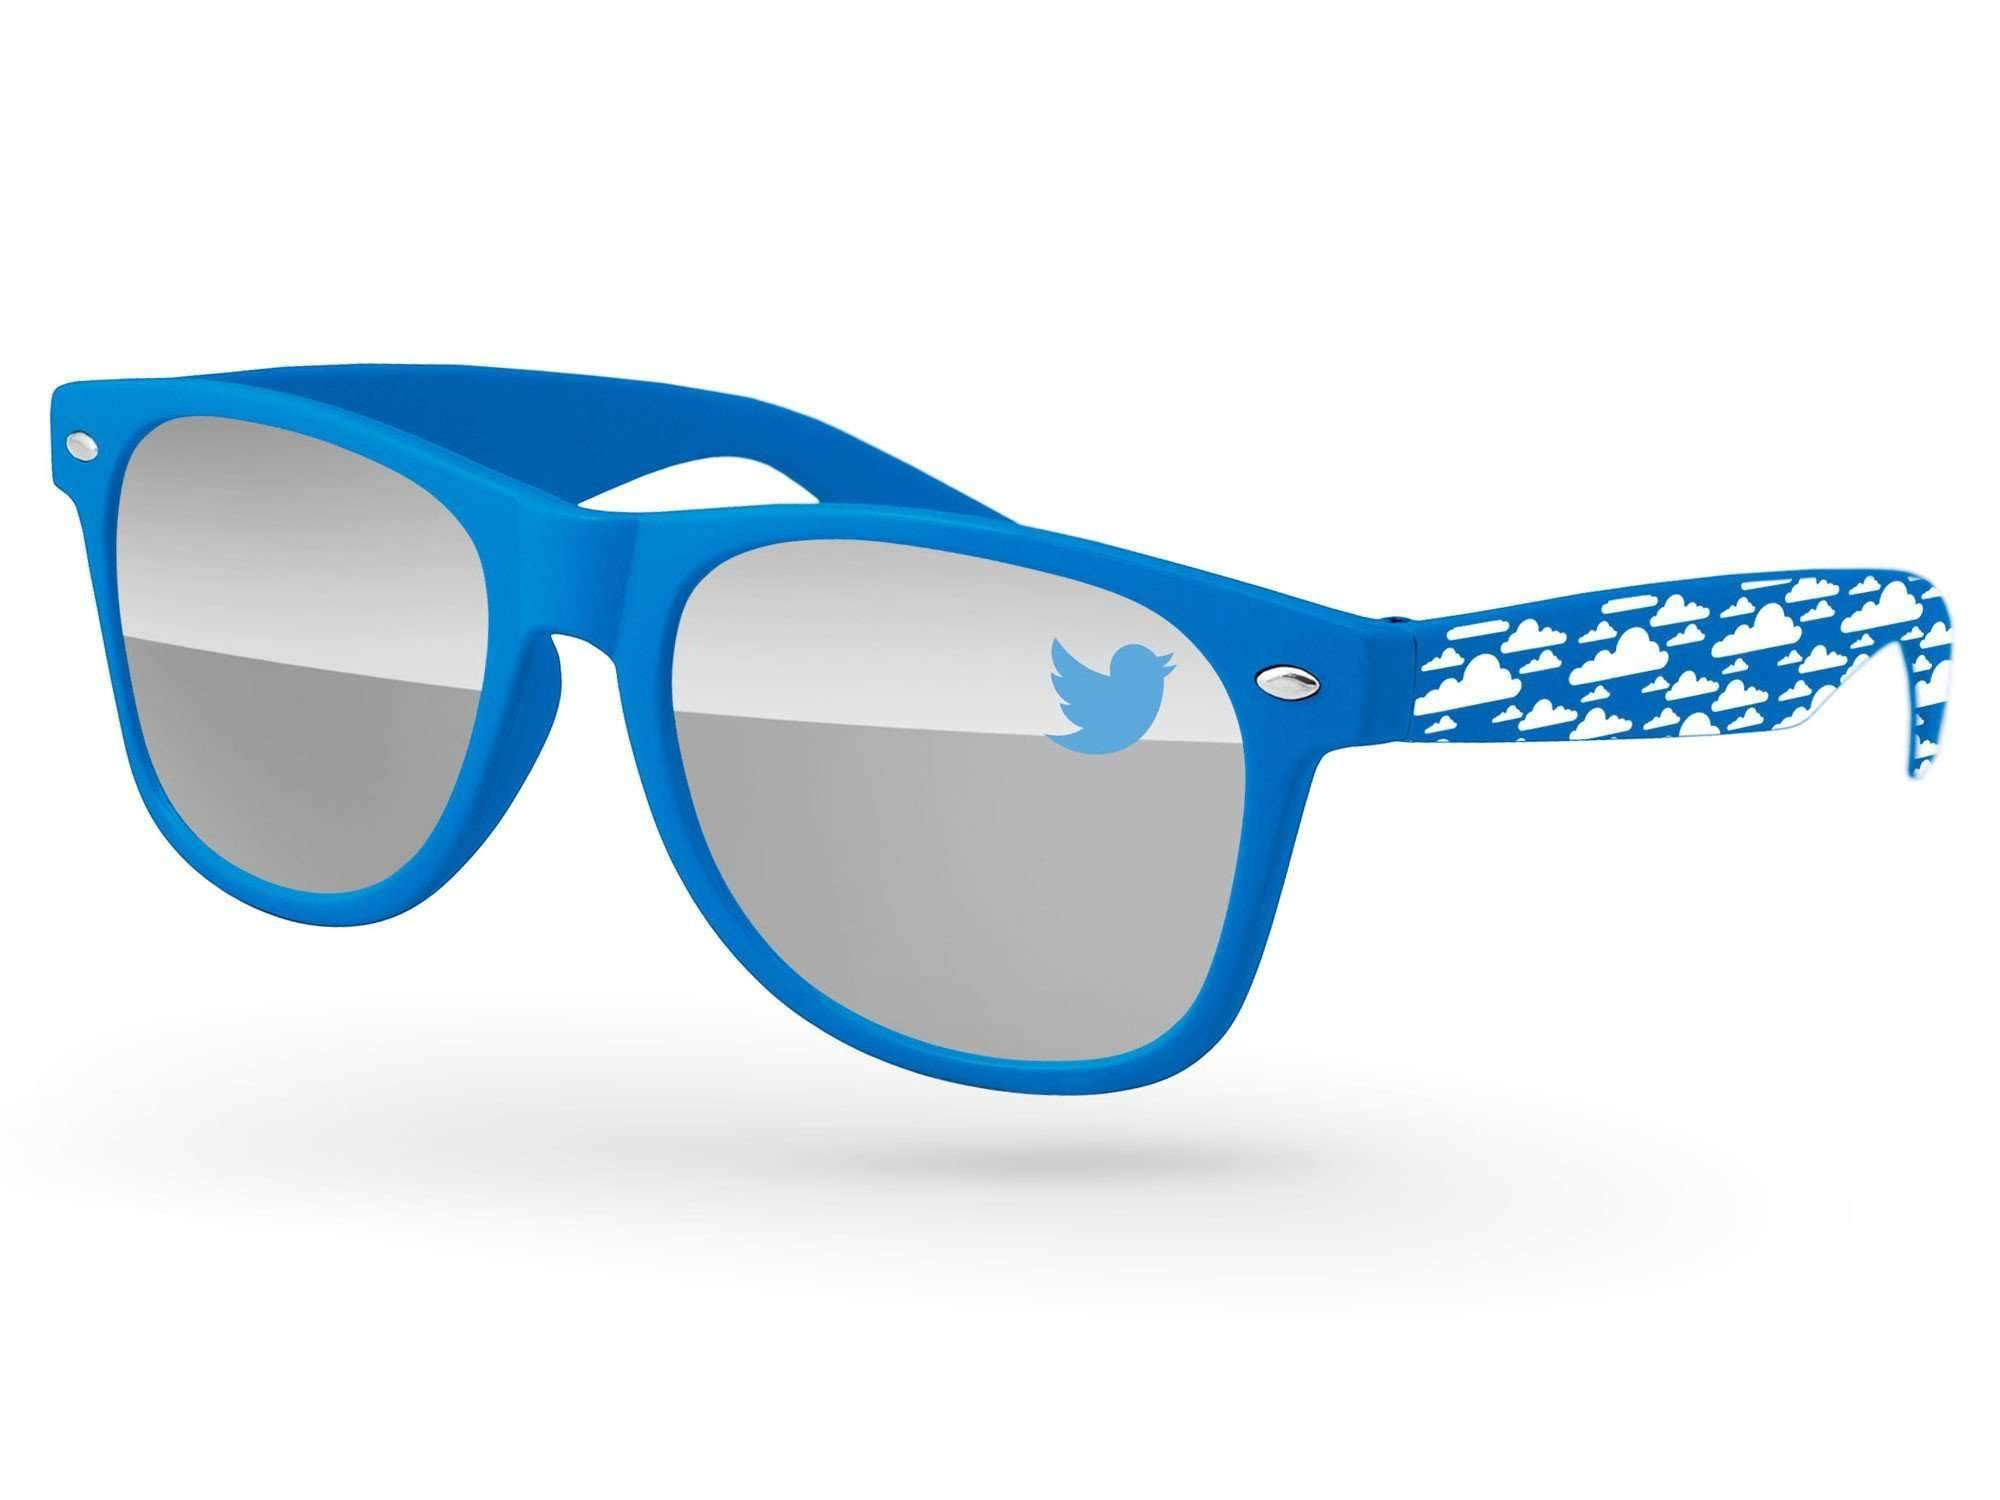 RM530 - Retro Mirror Promotional Sunglasses w/ 1-color lens imprint & 1-color extended arm imprint